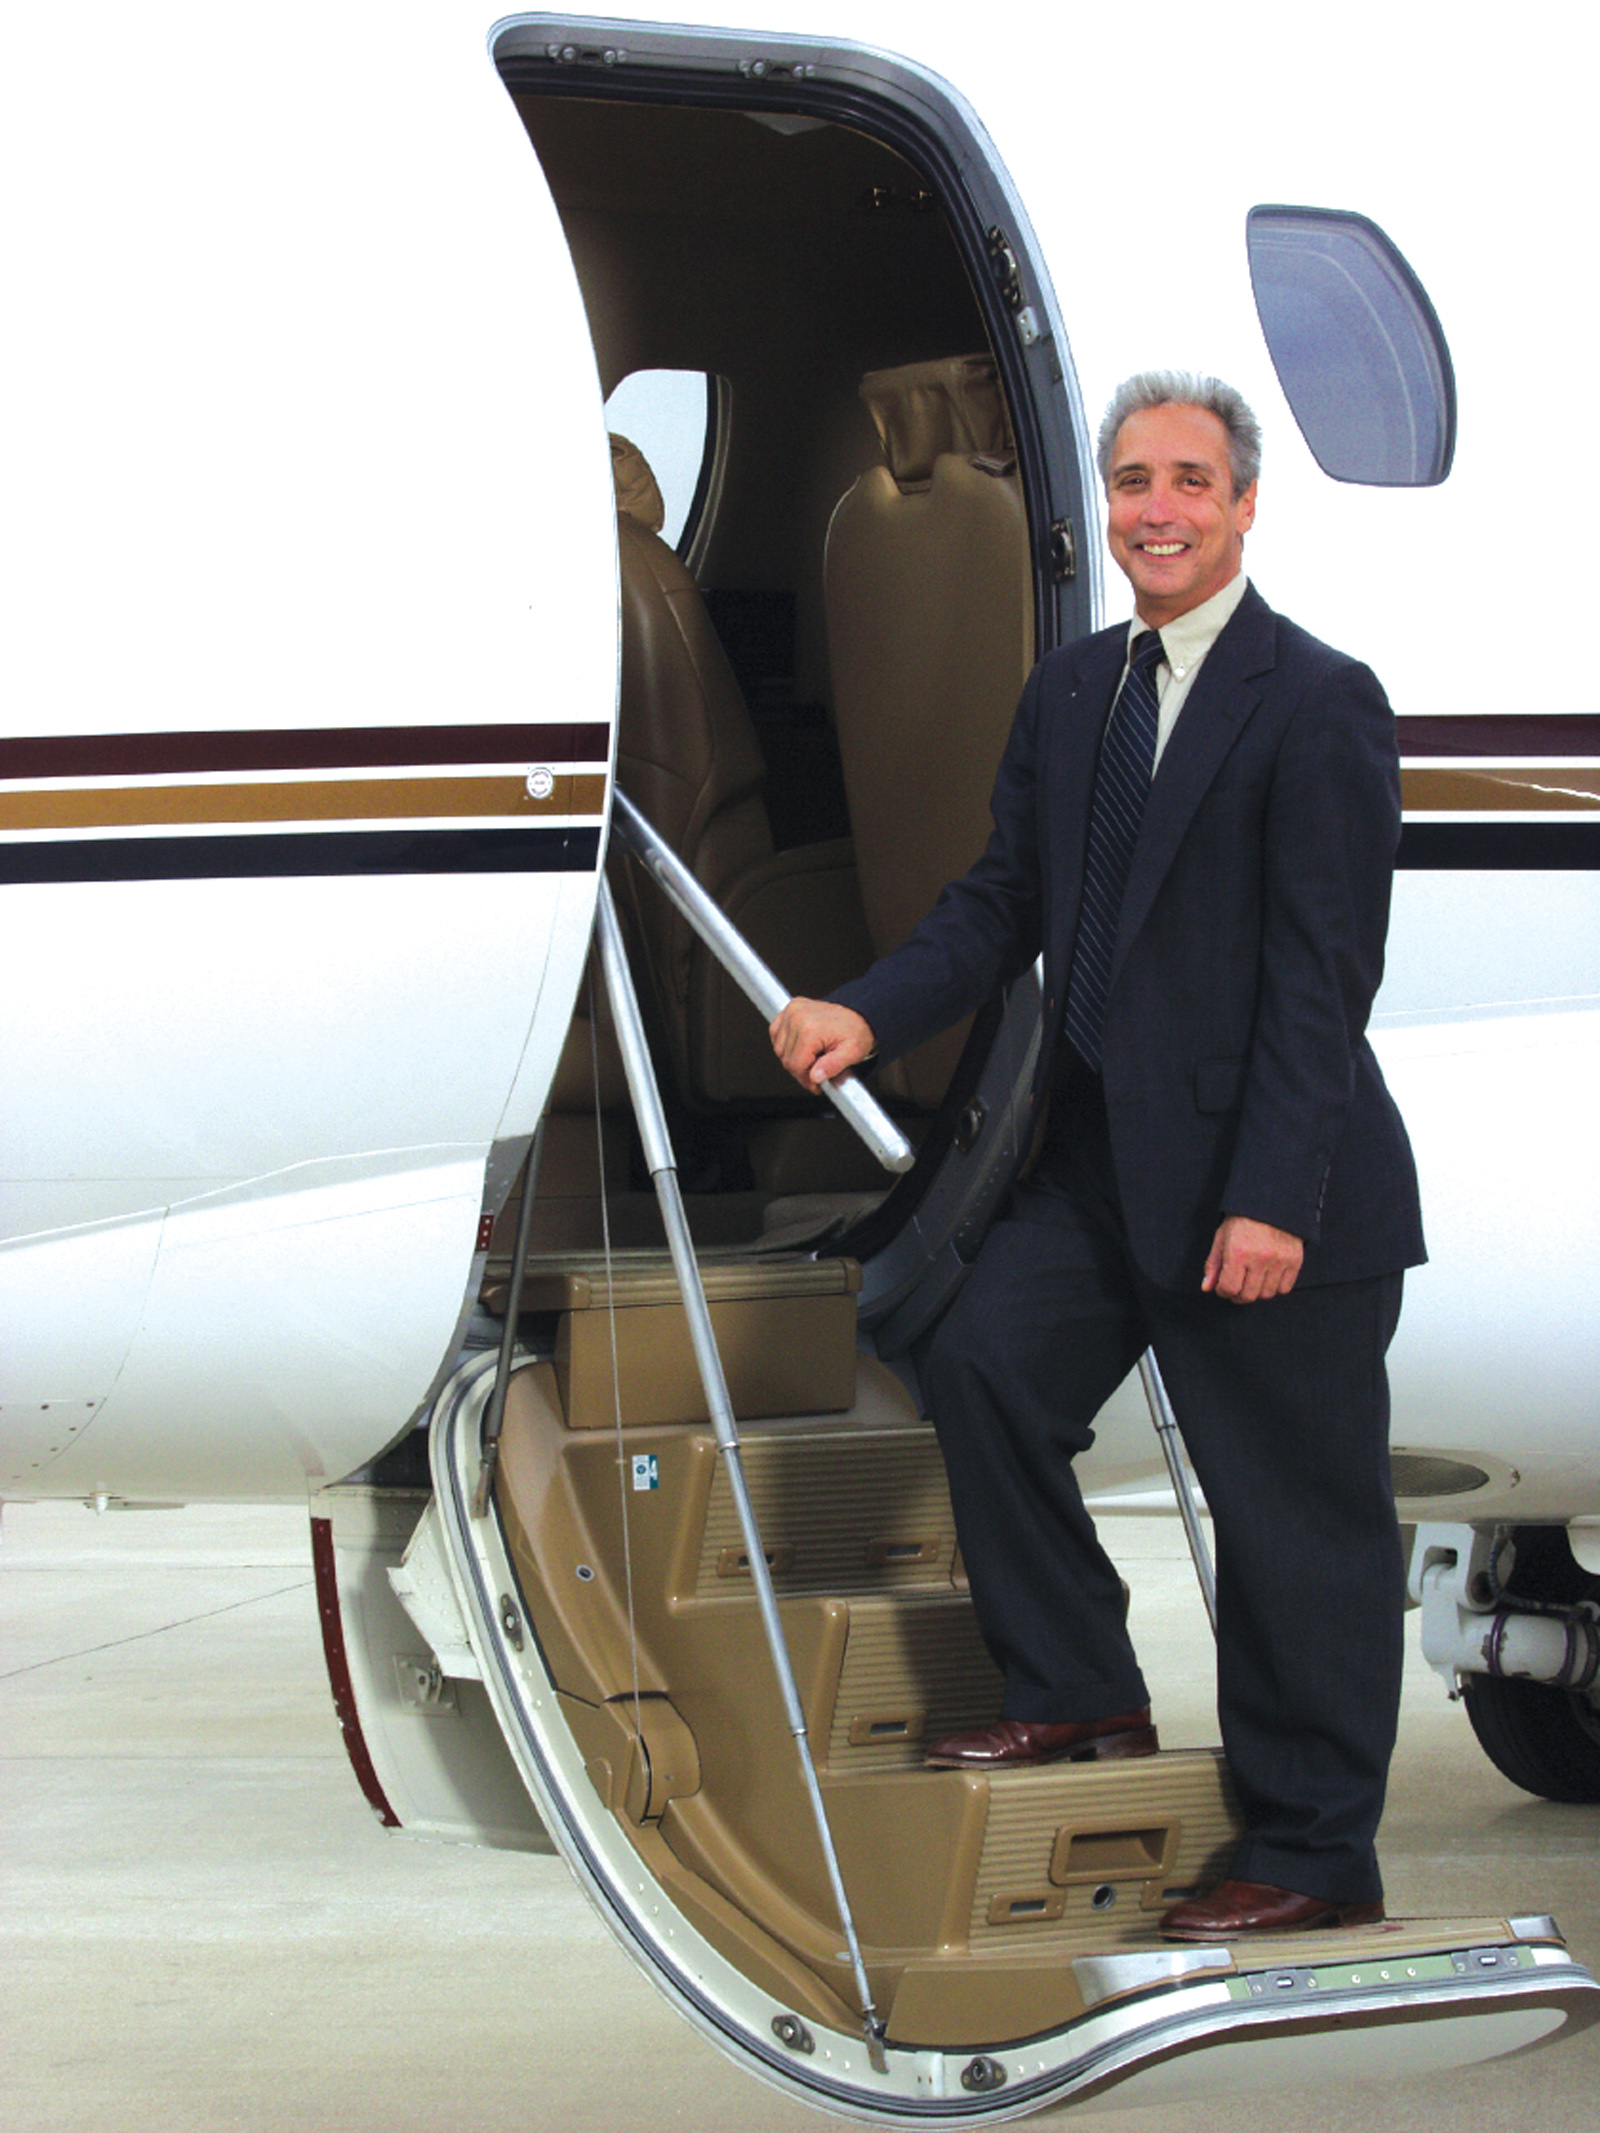 Alan Bell Promoted to VP of Aircraft Sales at Aero Charter